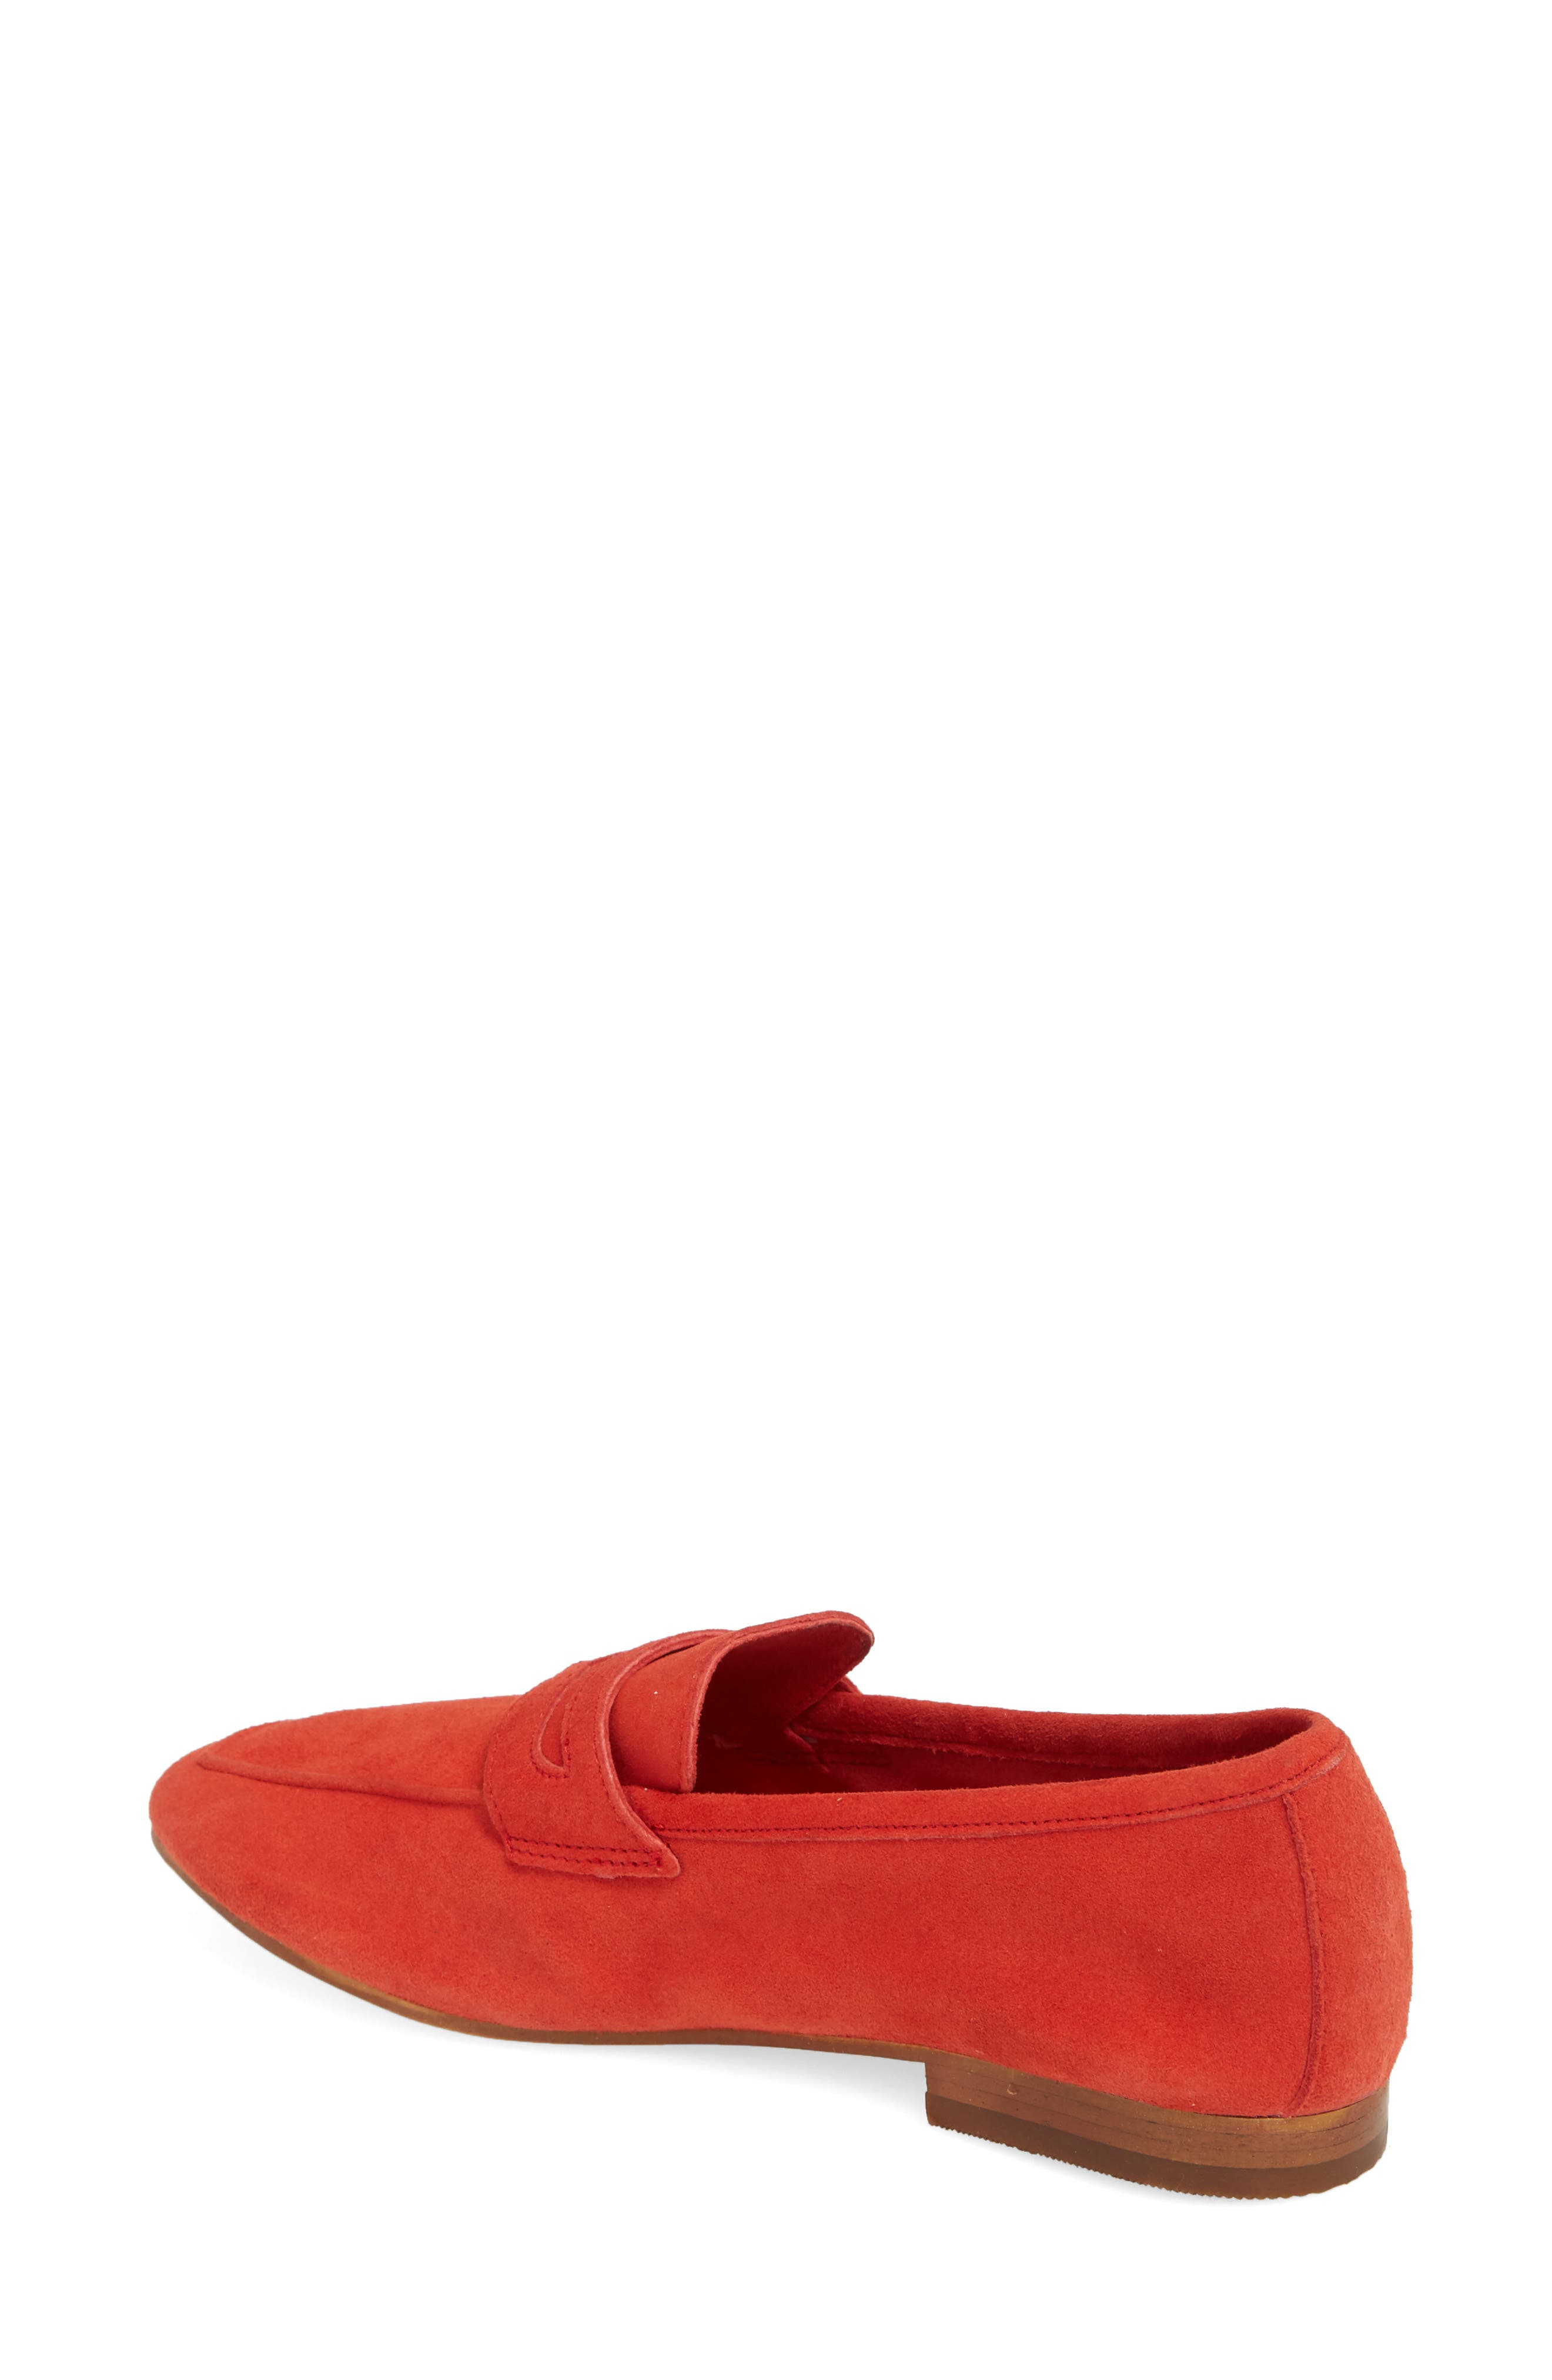 Dean Apron Toe Penny Loafer,                             Alternate thumbnail 2, color,                             Red Suede